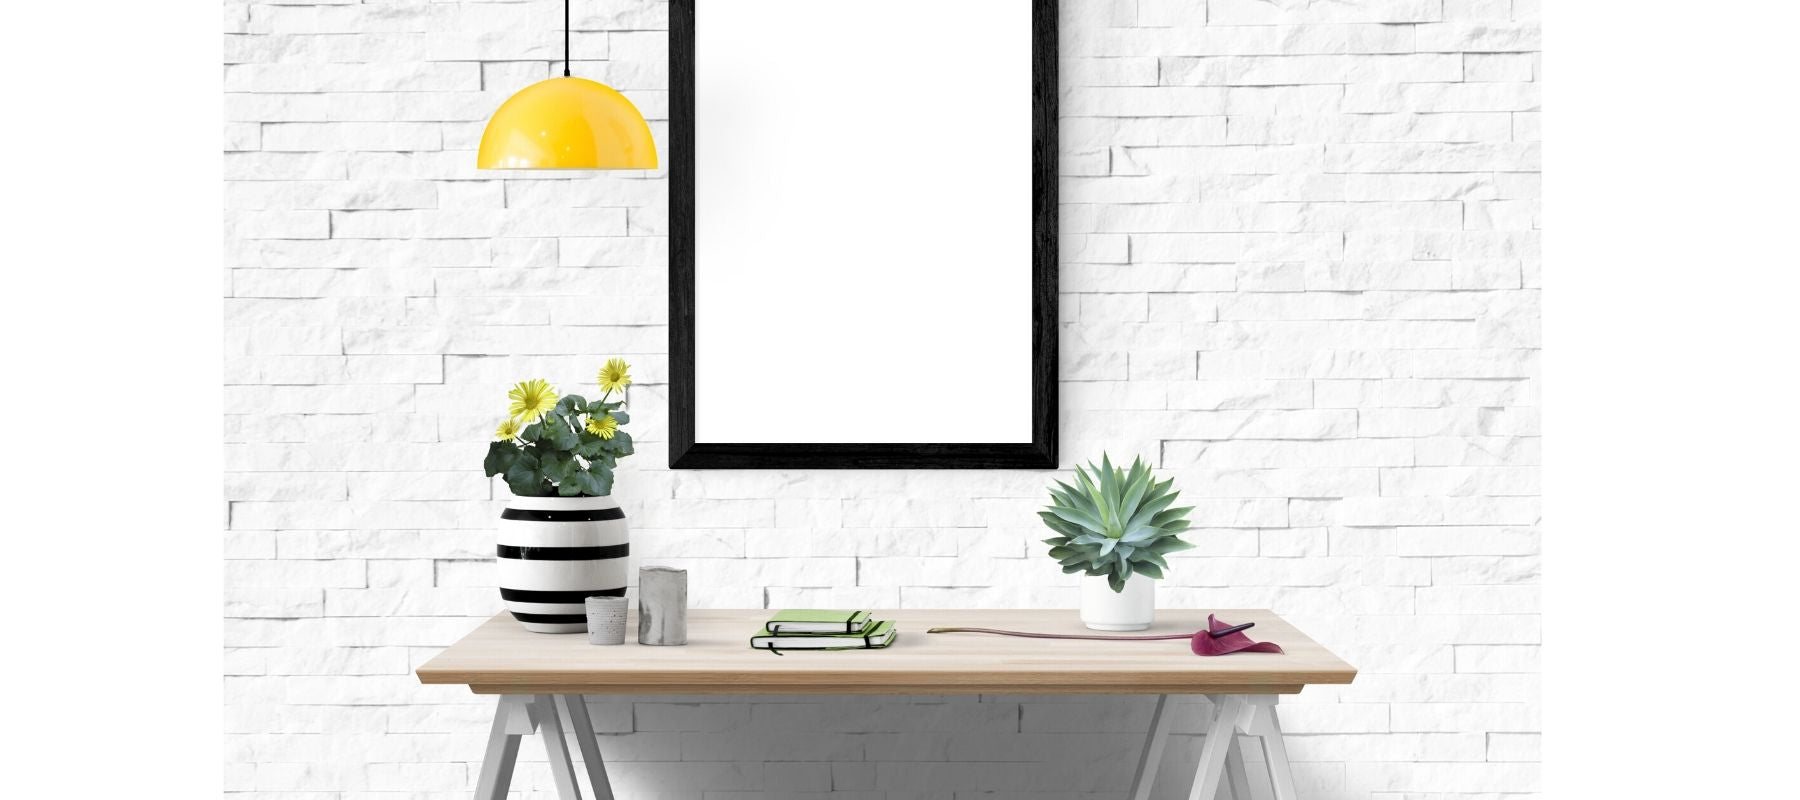 Black framed mirror on white brick wall with yellow hanging light